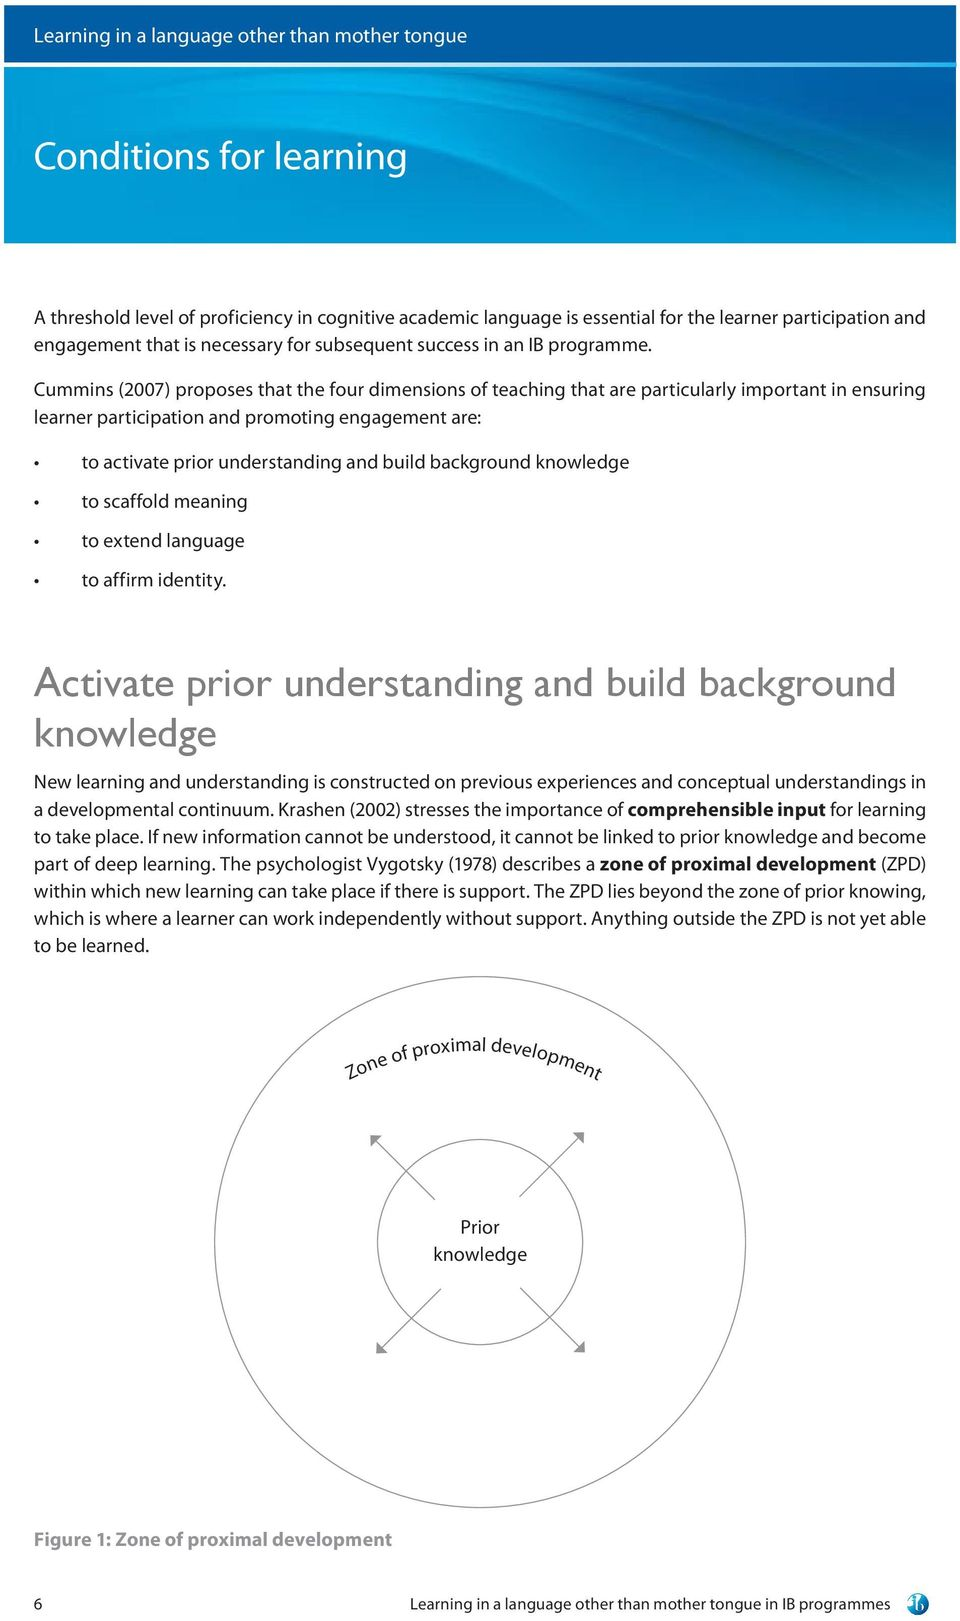 Cummins (2007) proposes that the four dimensions of teaching that are particularly important in ensuring learner participation and promoting engagement are: to activate prior understanding and build